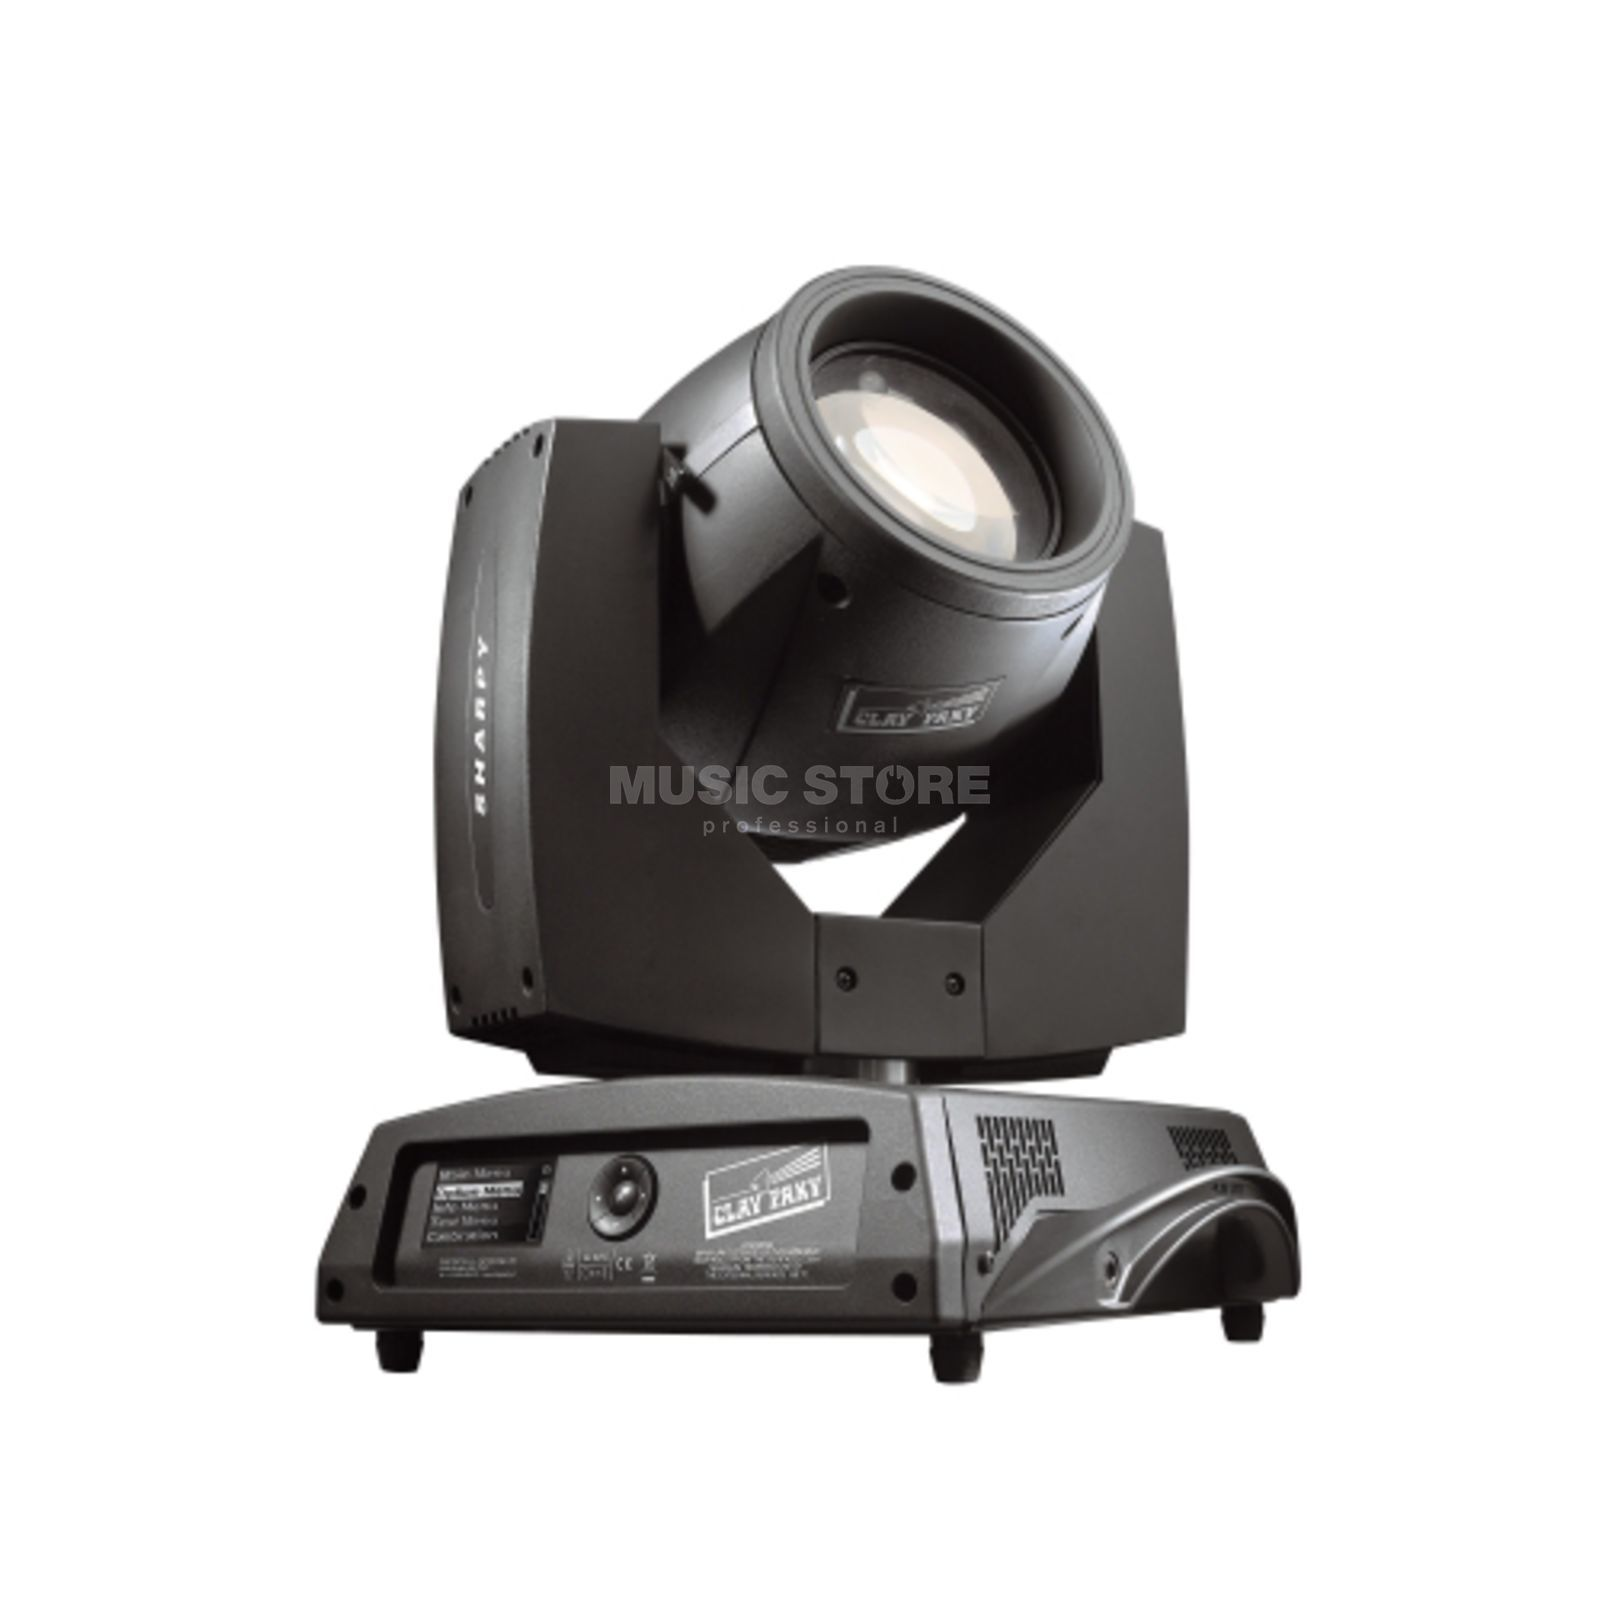 Clay Paky SHARPY Moving Head incl. 189W Entladungslampe Produktbild